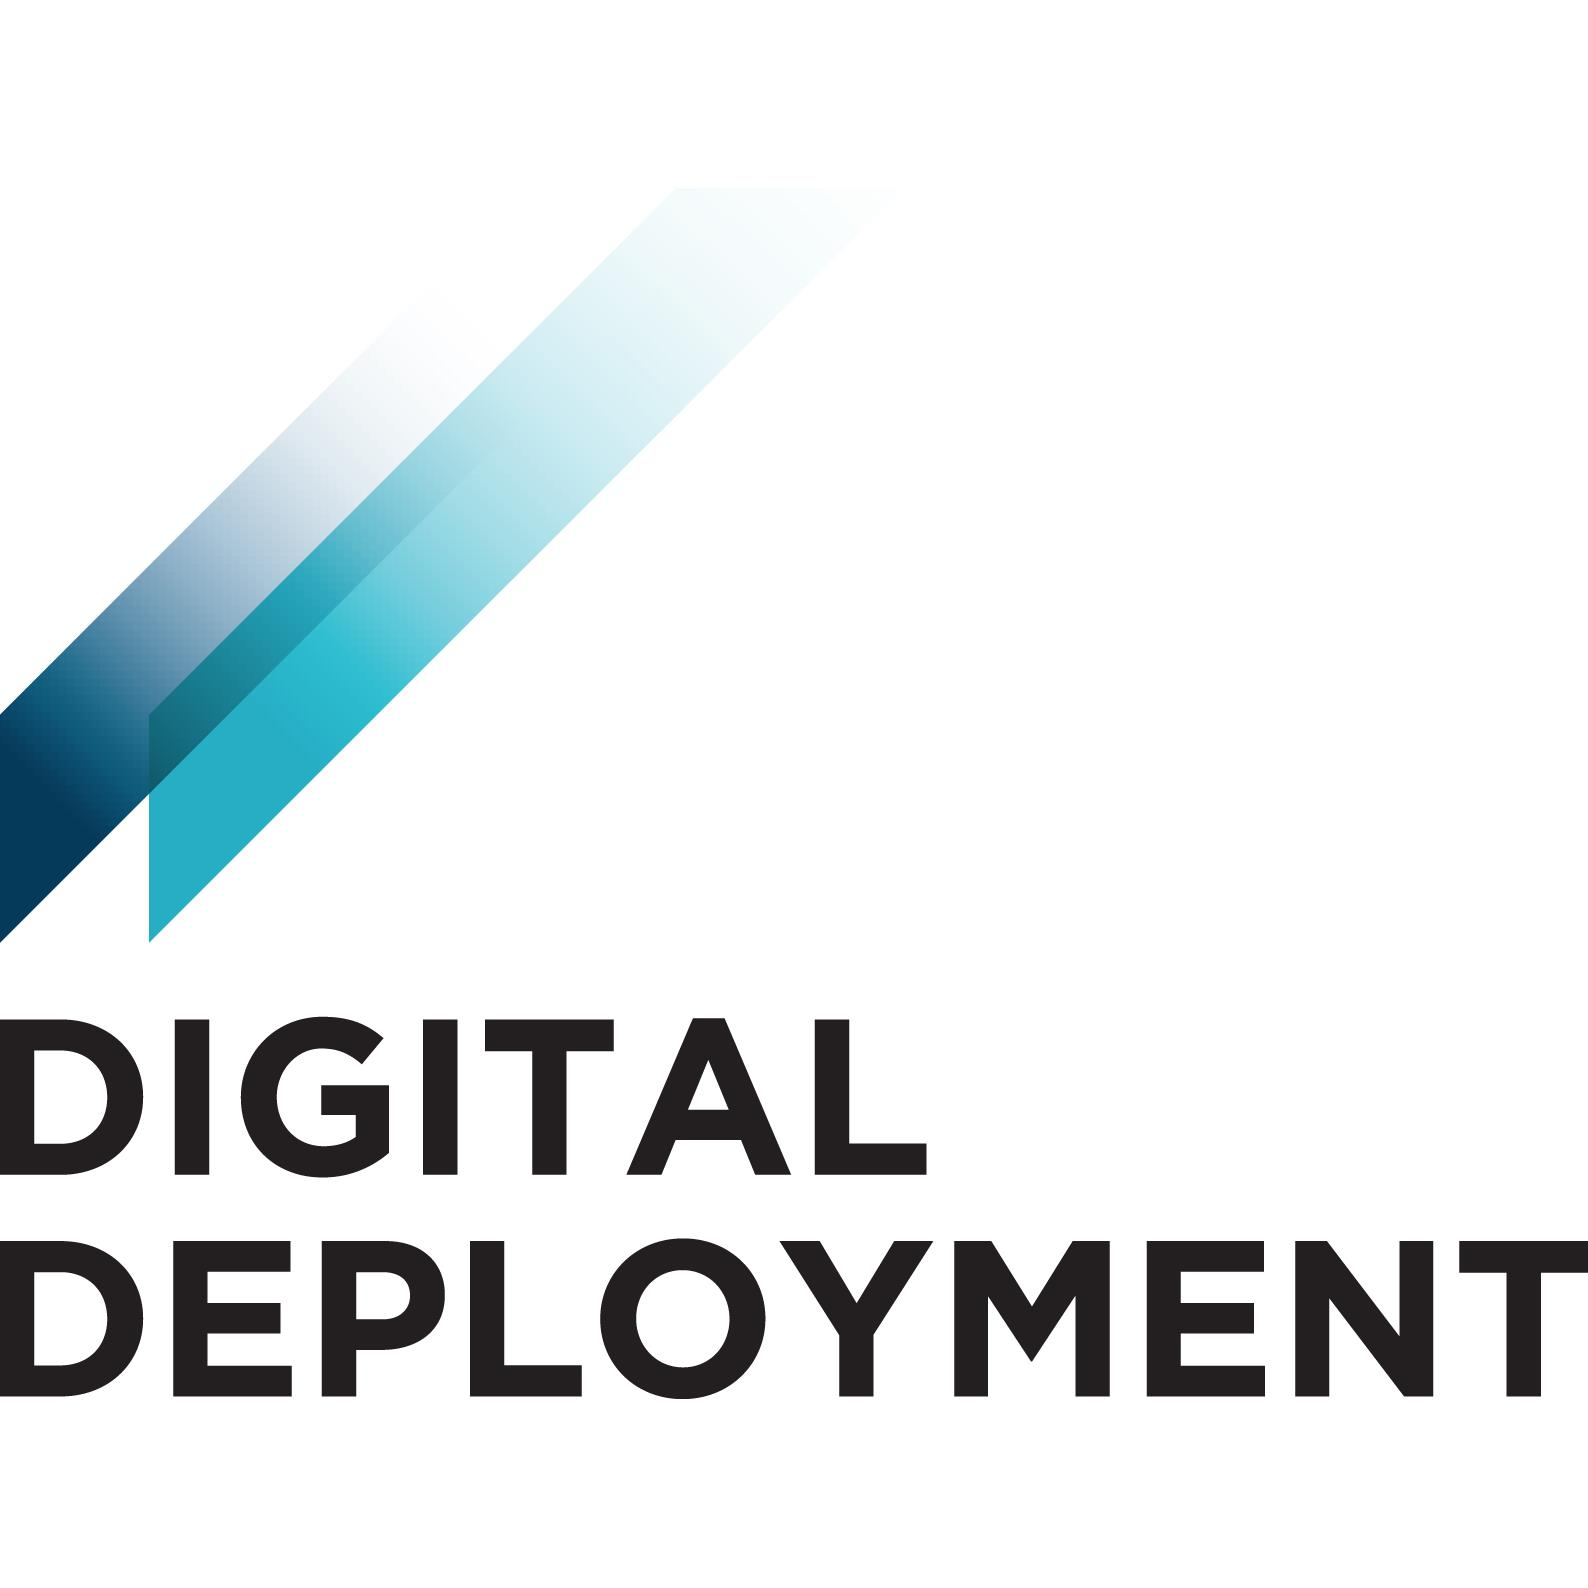 Digital Deployment + Logo